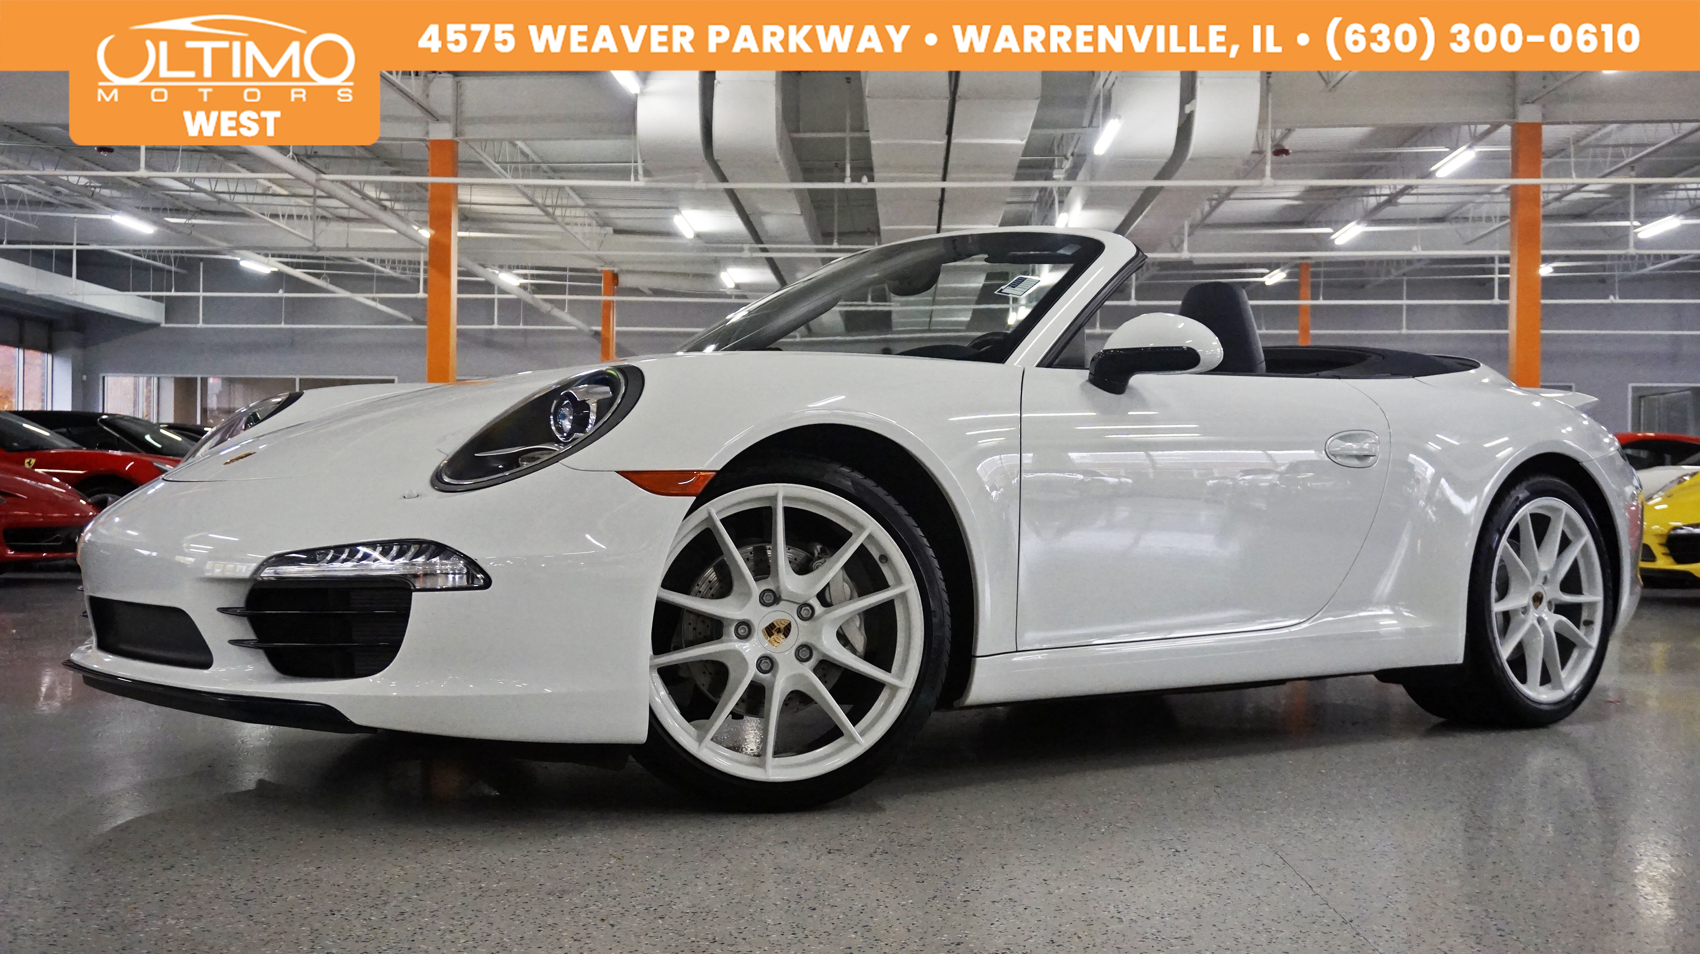 Pre-Owned 2015 Porsche 911 Carrera 20inch S wheels, PDLS, Bose, White Dials, Msrp $115,130